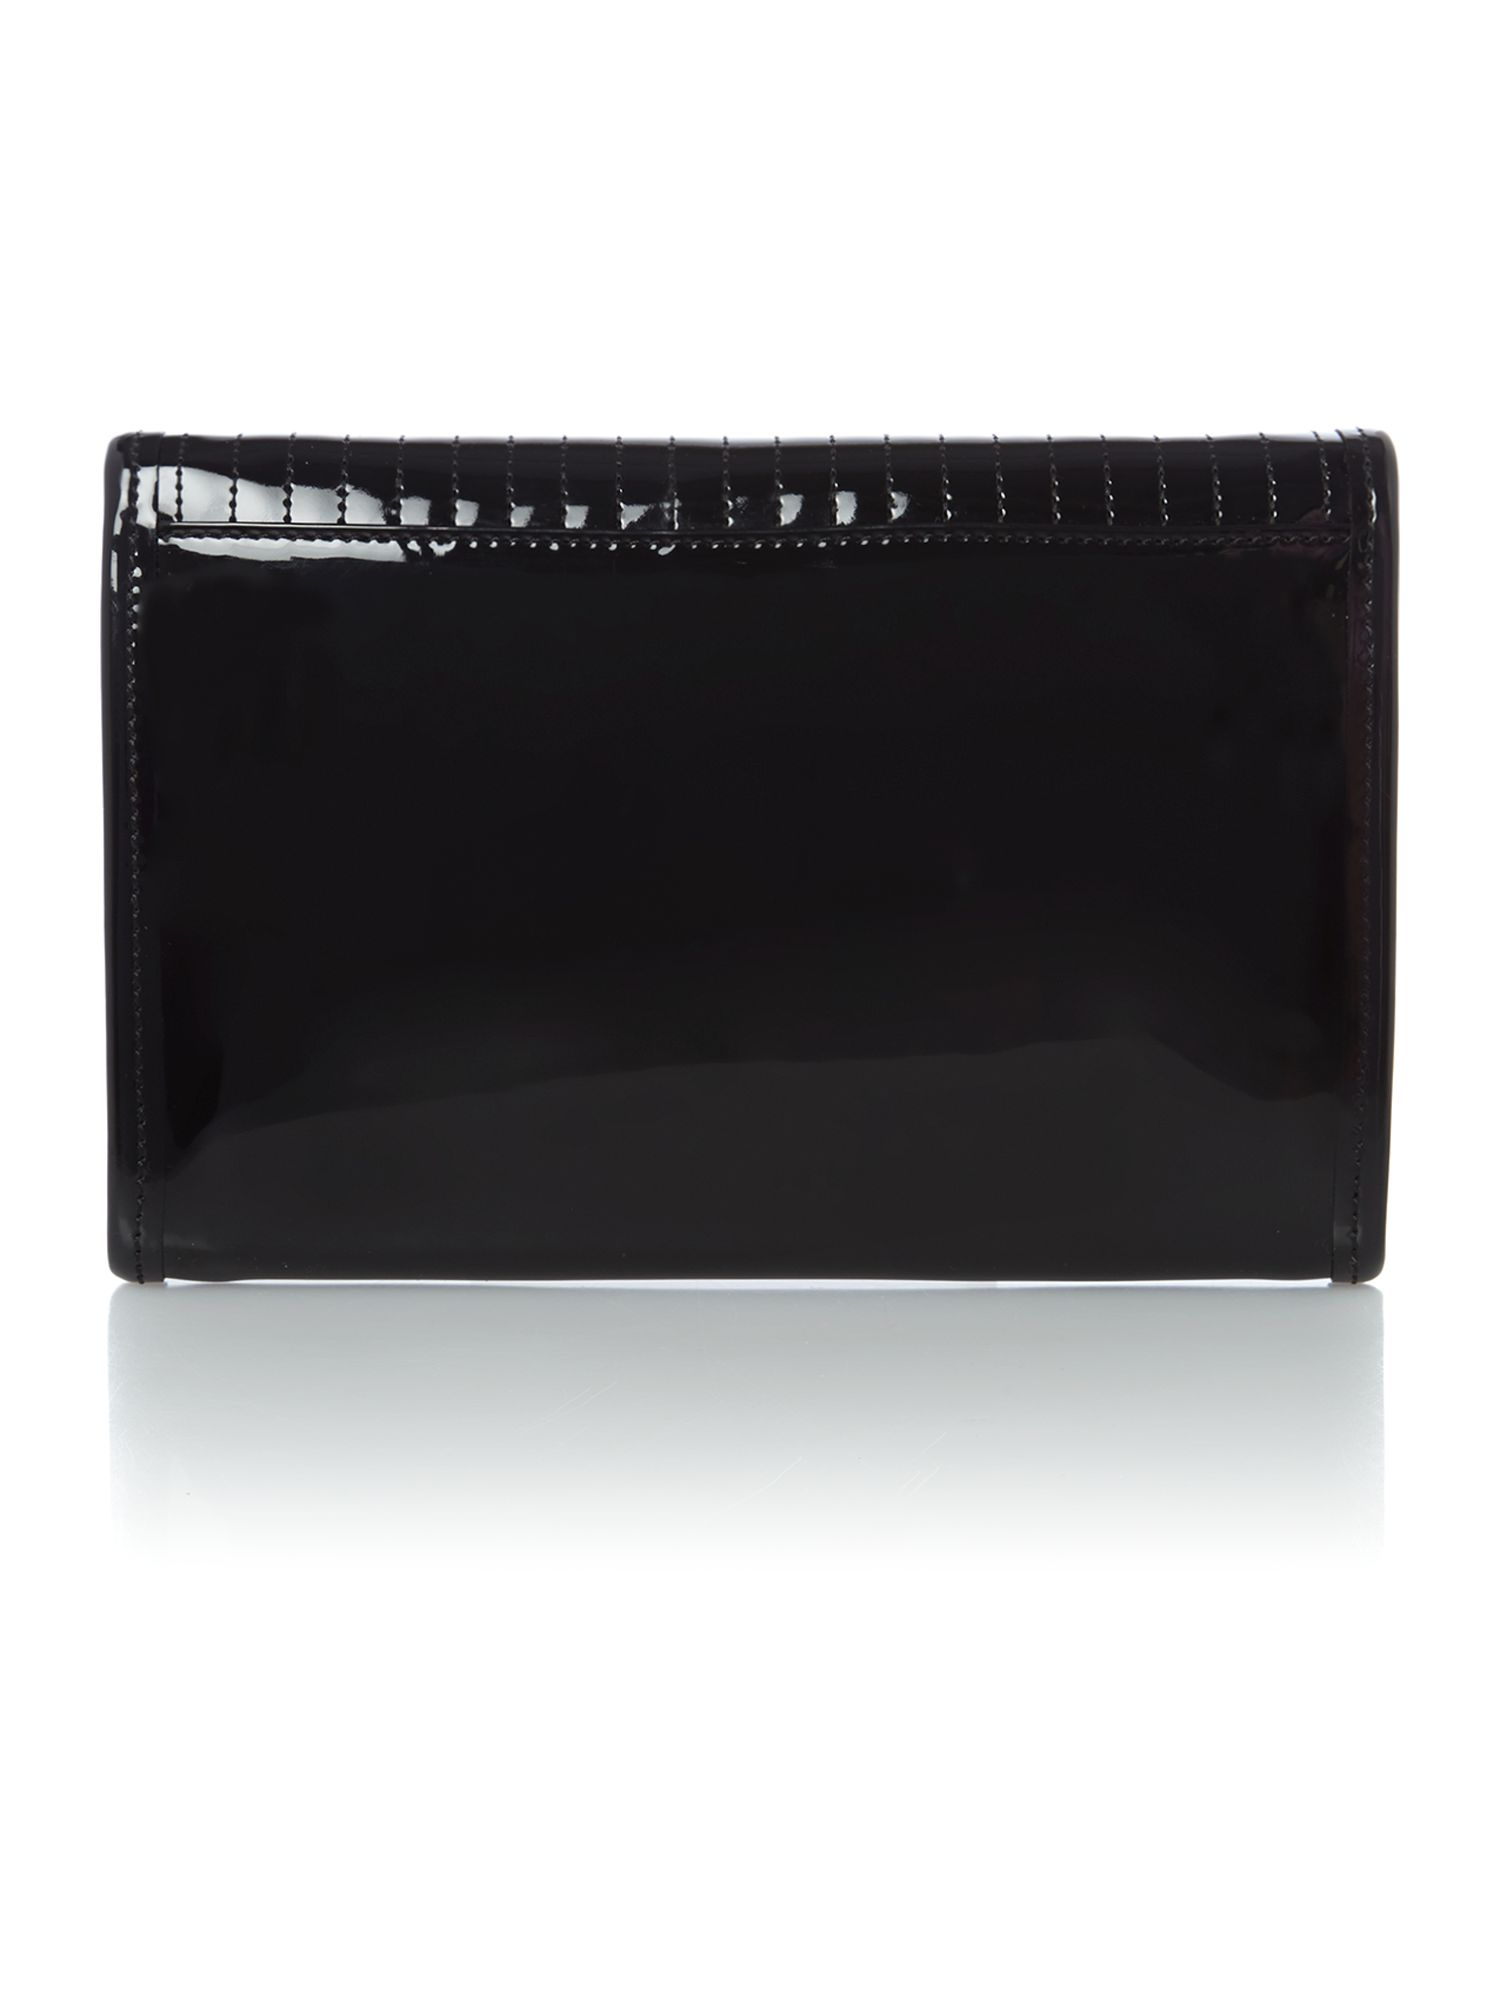 Black quilt clutch ipad bag